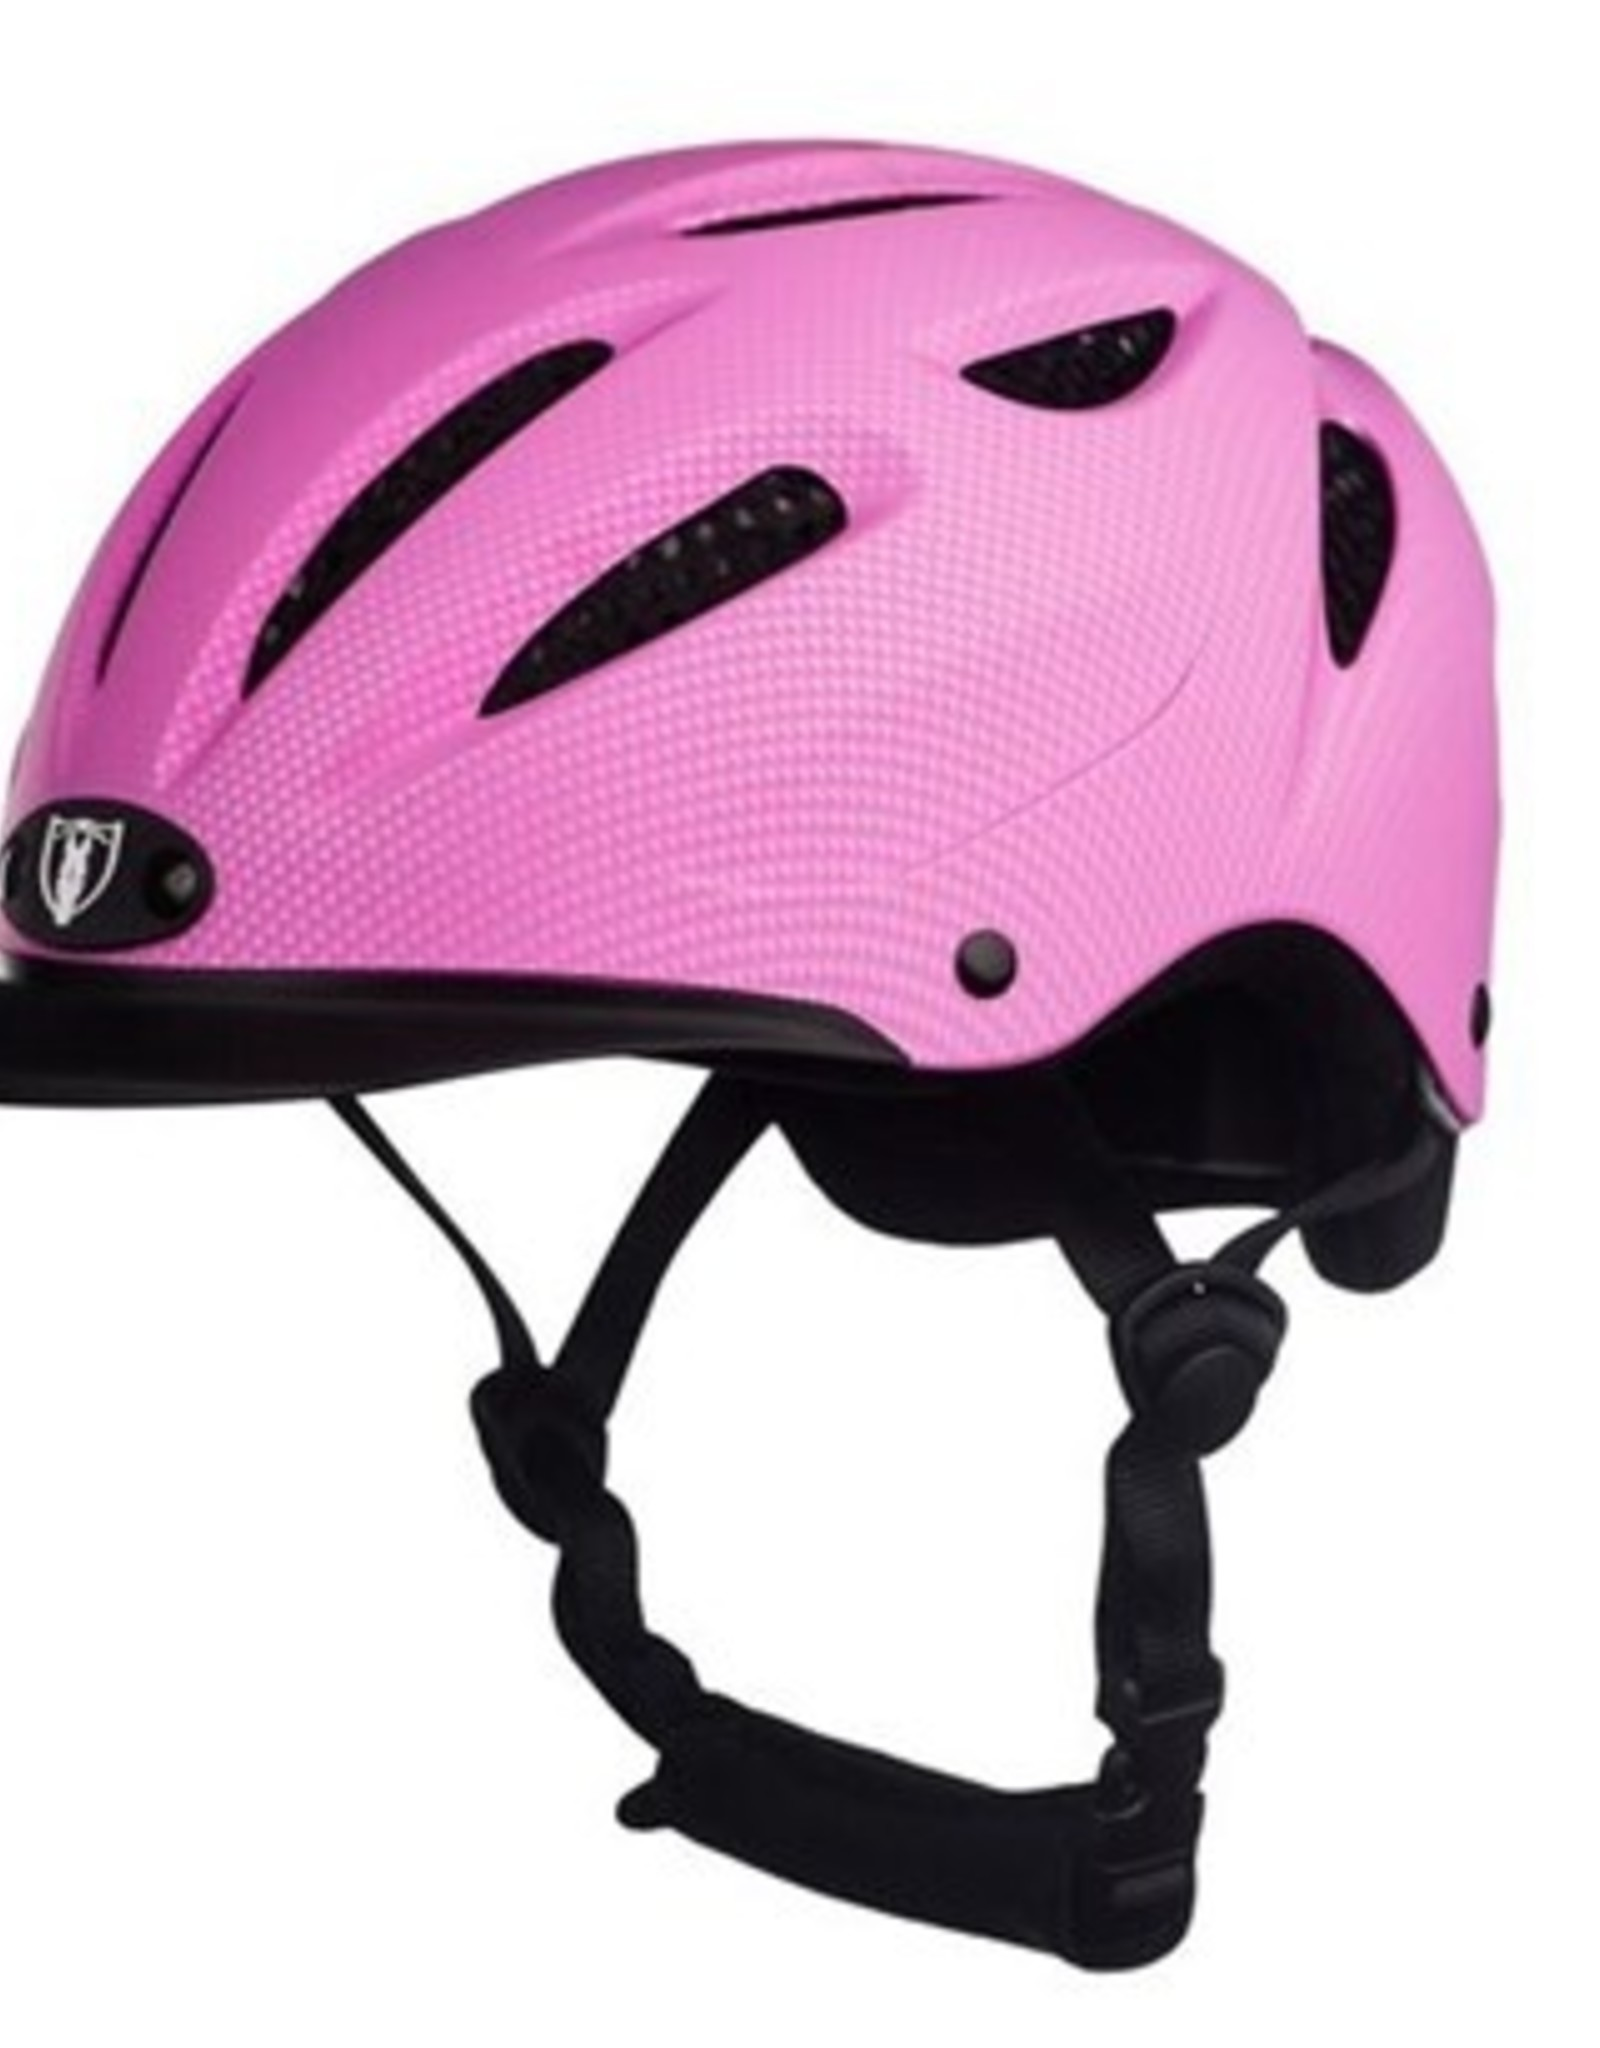 Phoenix Performance Products Tipperary Toddler Sportage 8600 Helmet